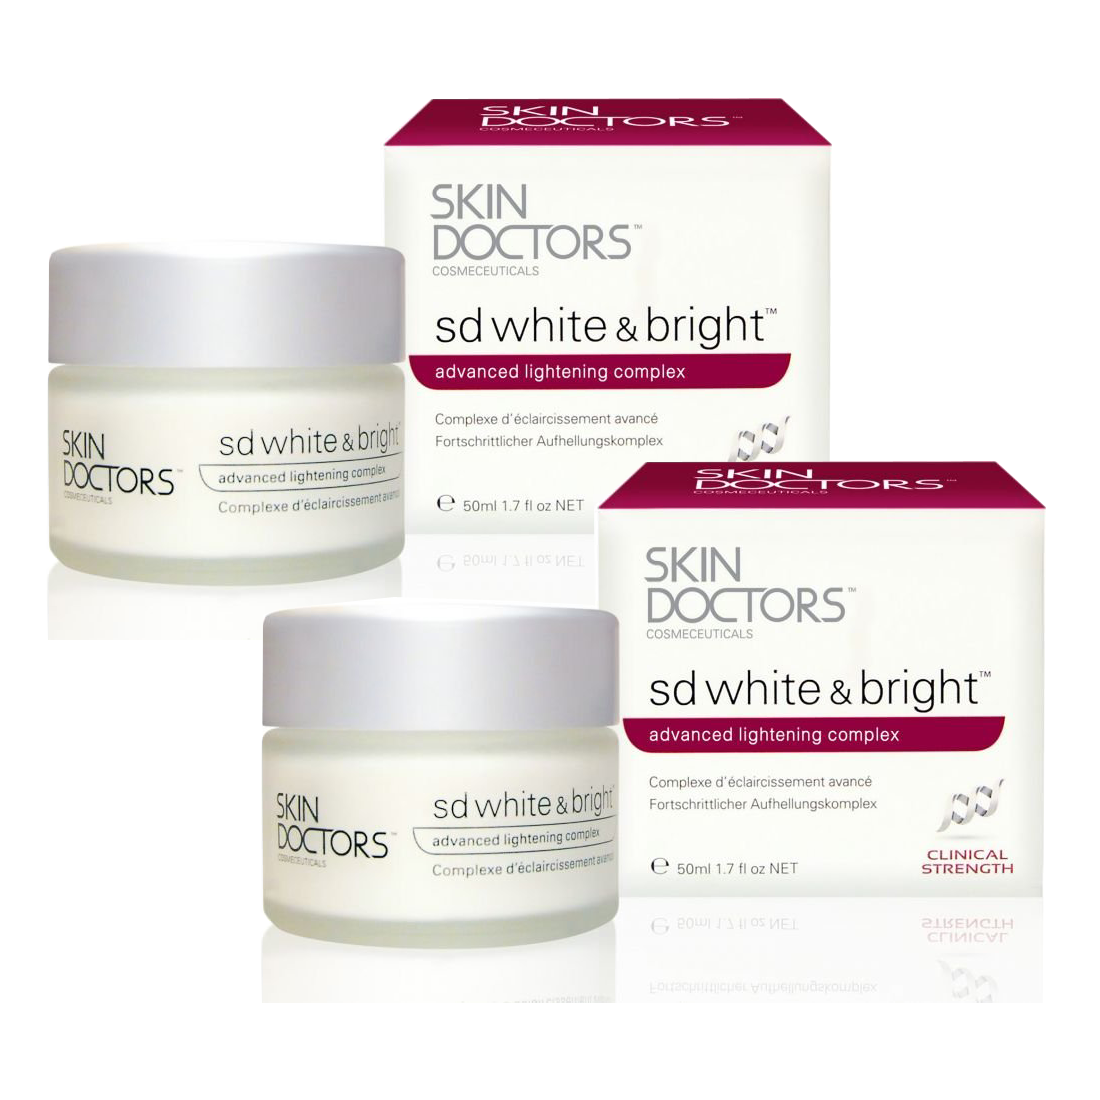 Skin Doctors SD White & Bright 50ml. (2 ชิ้น)